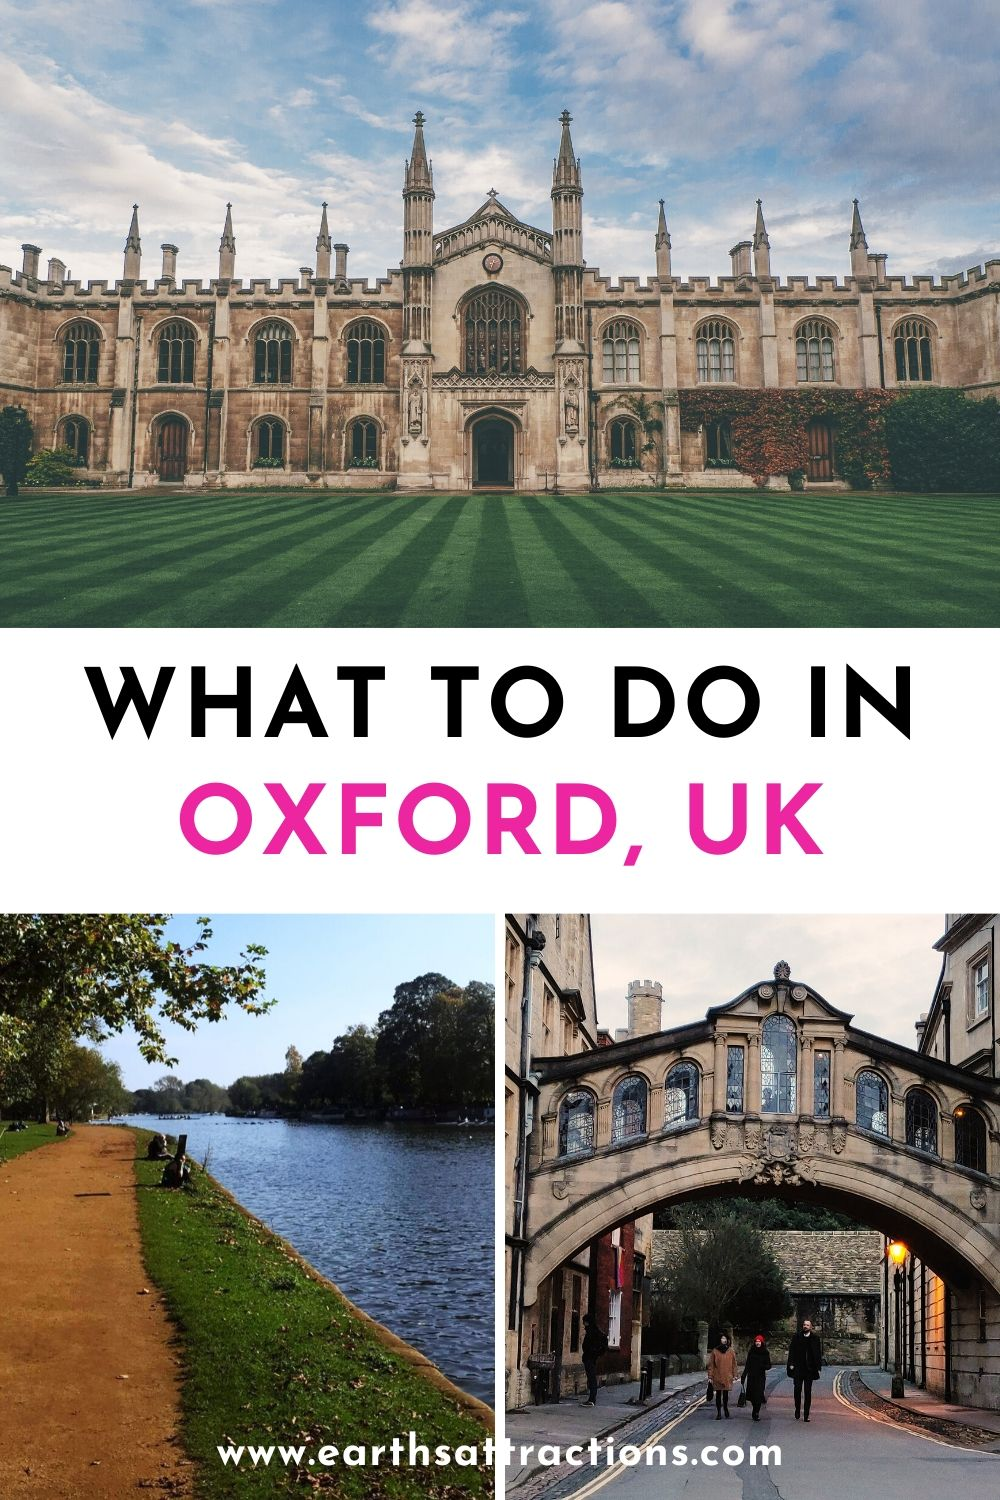 What to do in Oxford, UK. A great day trip from London, Oxford has numerous attractions. Discover both famous things to do in Oxford as well as offbeat places to visit in Oxford, UK from this article. Oxford tips, great Oxford restaurants, and Oxford accommodation options are also included. #oxford #england #oxforduk #oxfordthingstodo #thingstodo #europetravel #earthsattractions #travelguides #oxfordguide #oxfordattractions #harrypotter